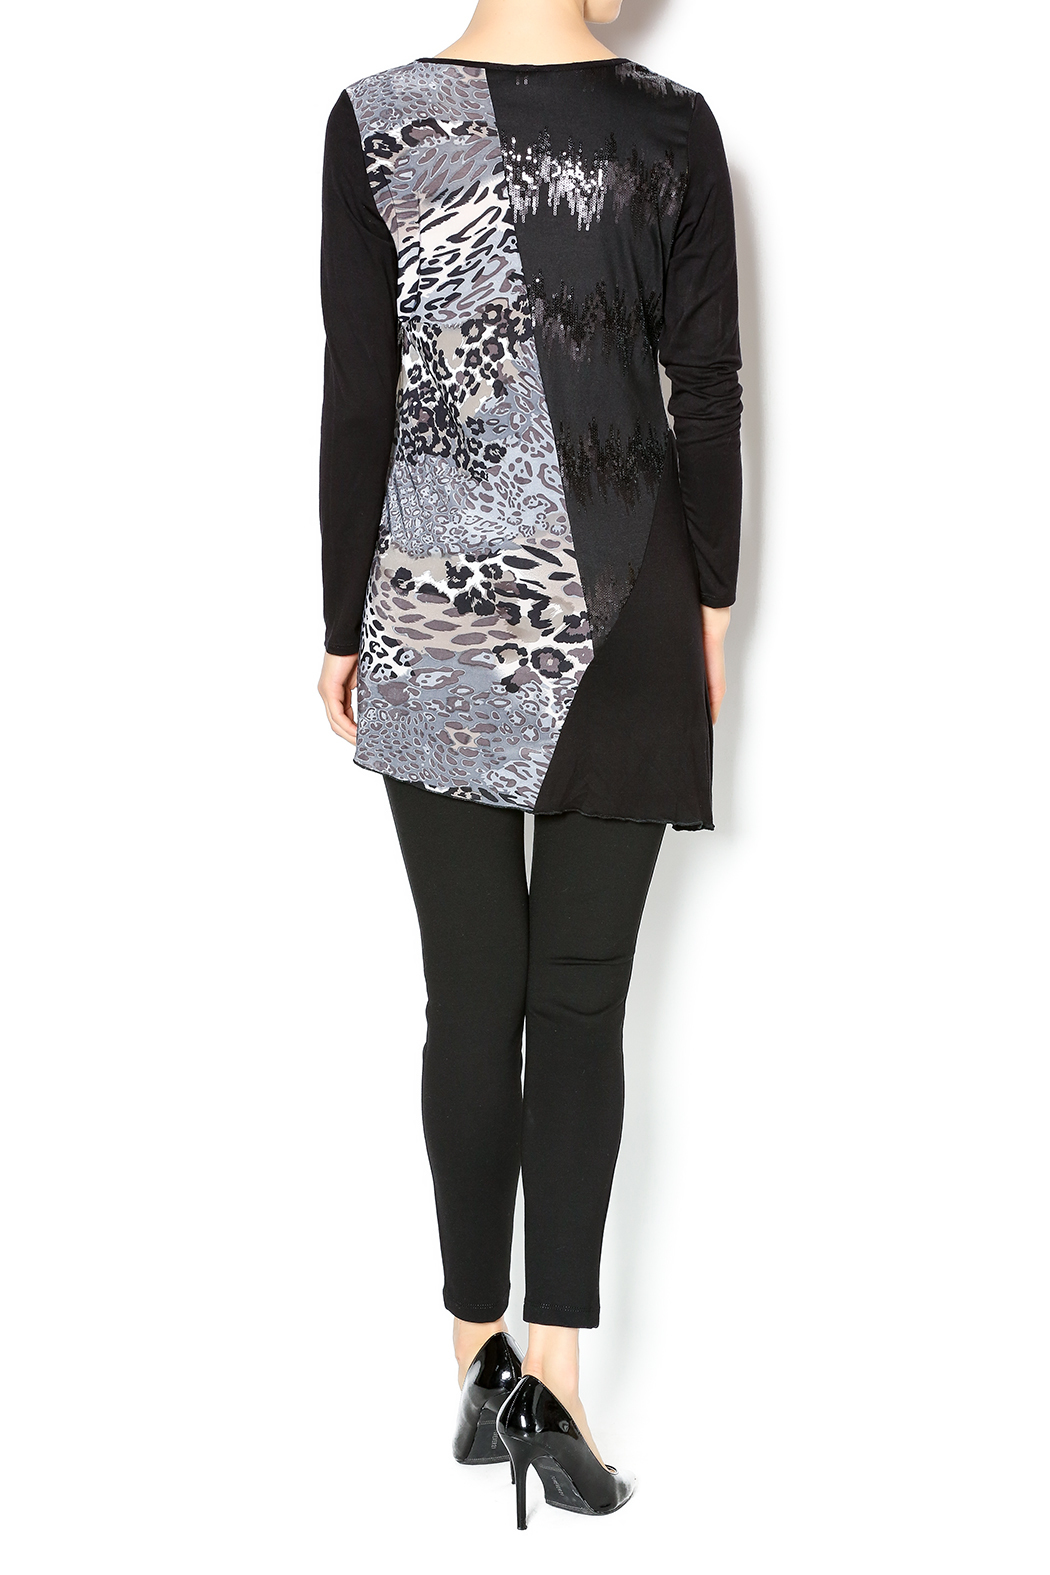 Cover Charge Black Leopard Tunic - Side Cropped Image